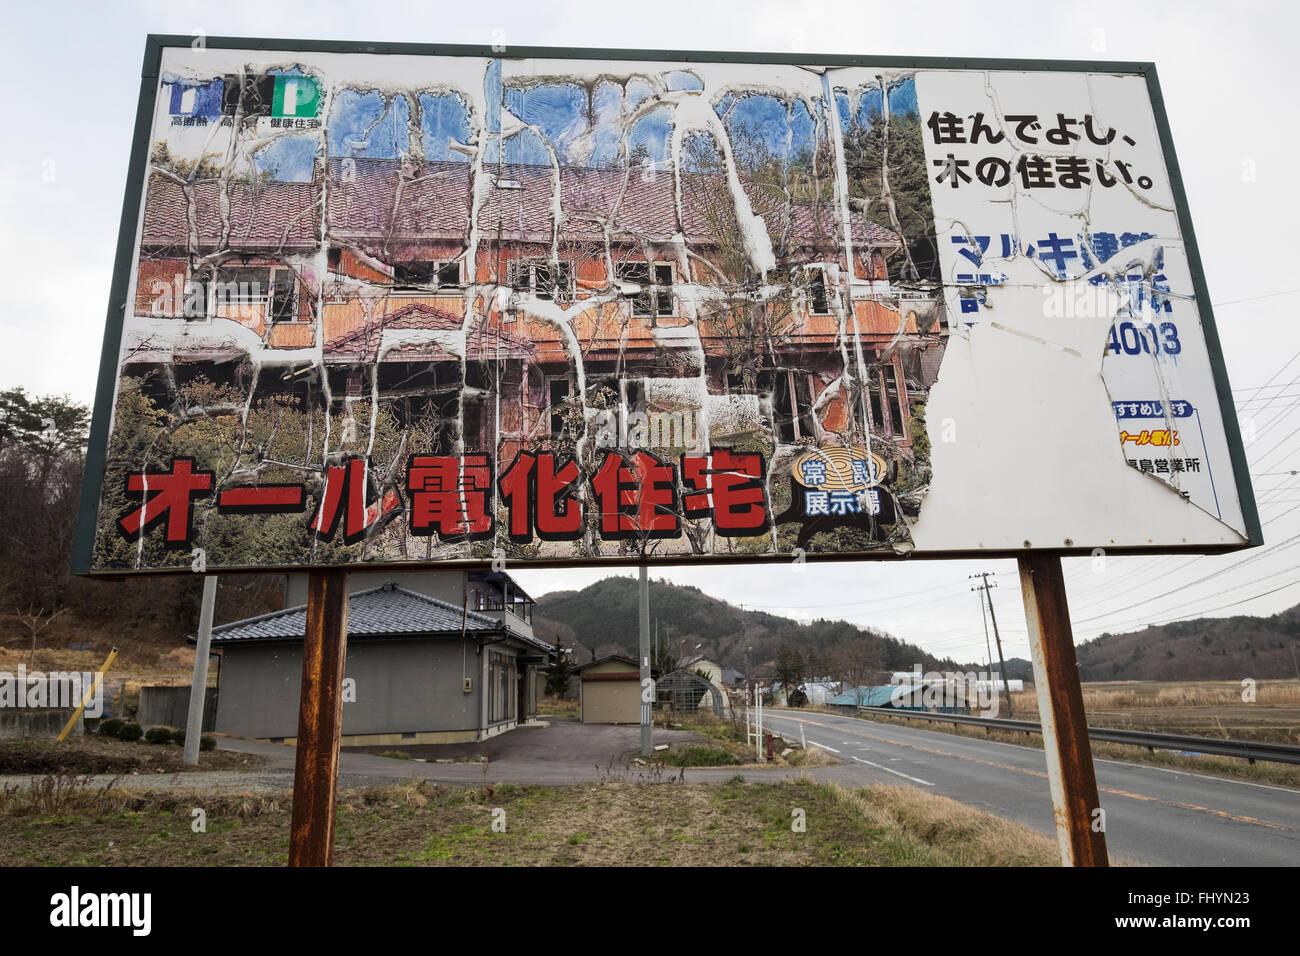 A deteriorating advertising sign for an electrical house in an area that was affected by the 2011 tsunami and nuclear - Stock Image